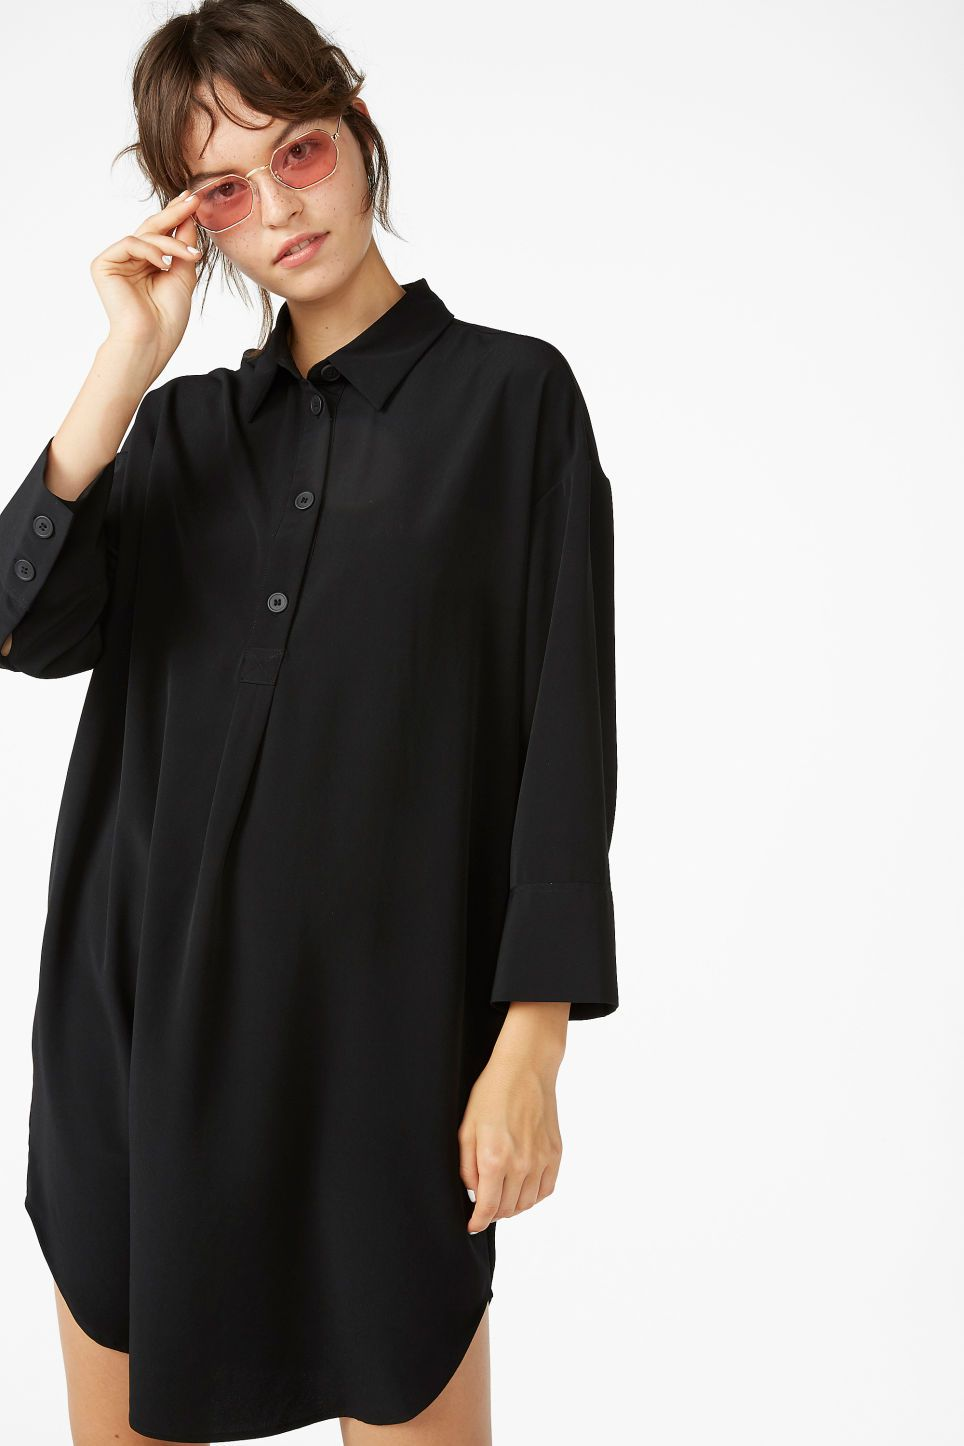 43aa61a1 Cut from a crisp, textured material, this wide and flowy shirt dress has a  button-up front and extra wide cuffs. In black, it s the definition of ...